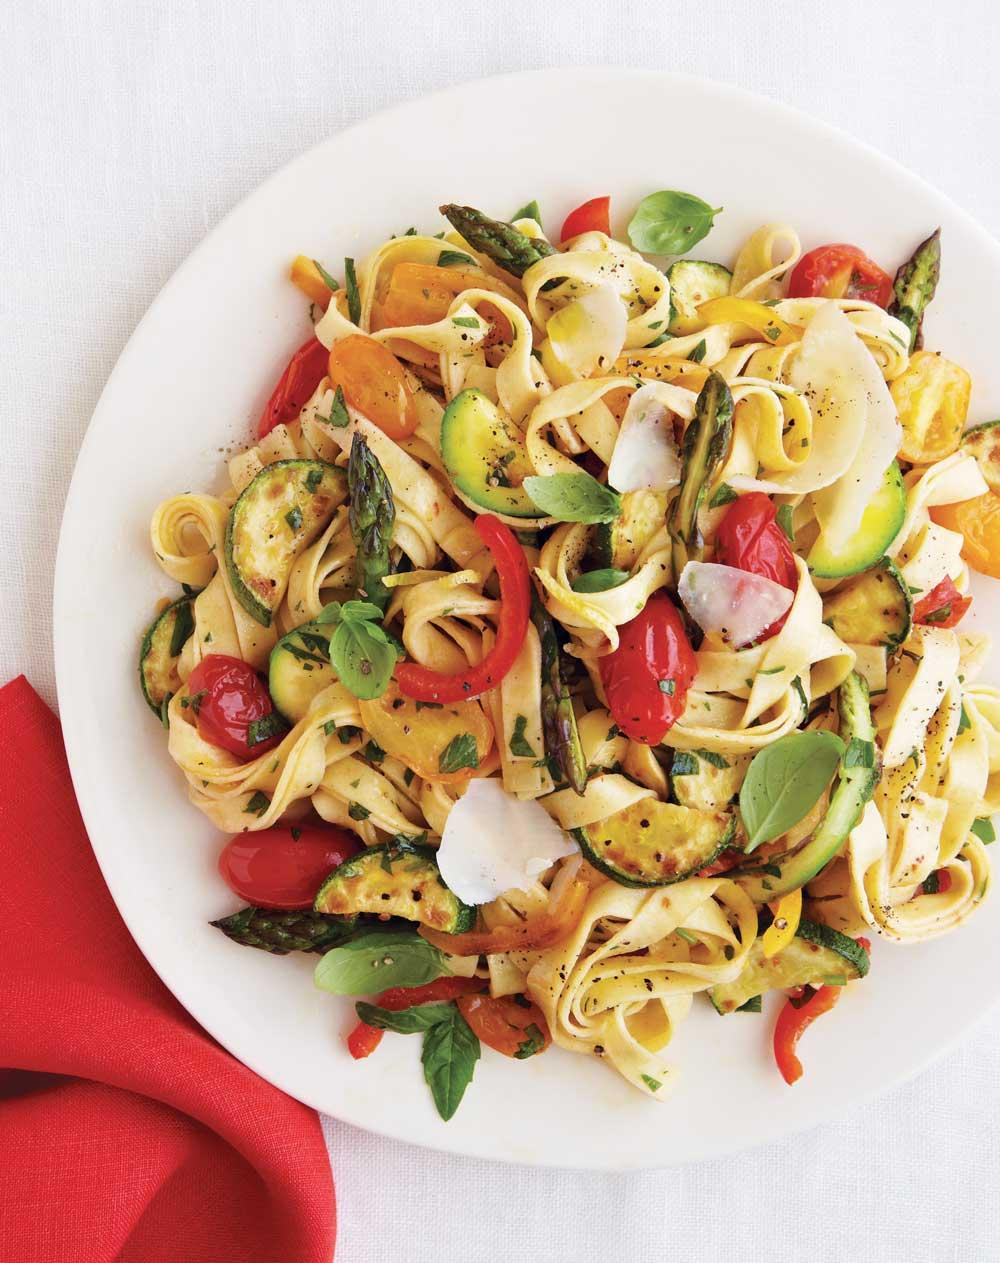 Recipe for Hearty Vegetable Pasta